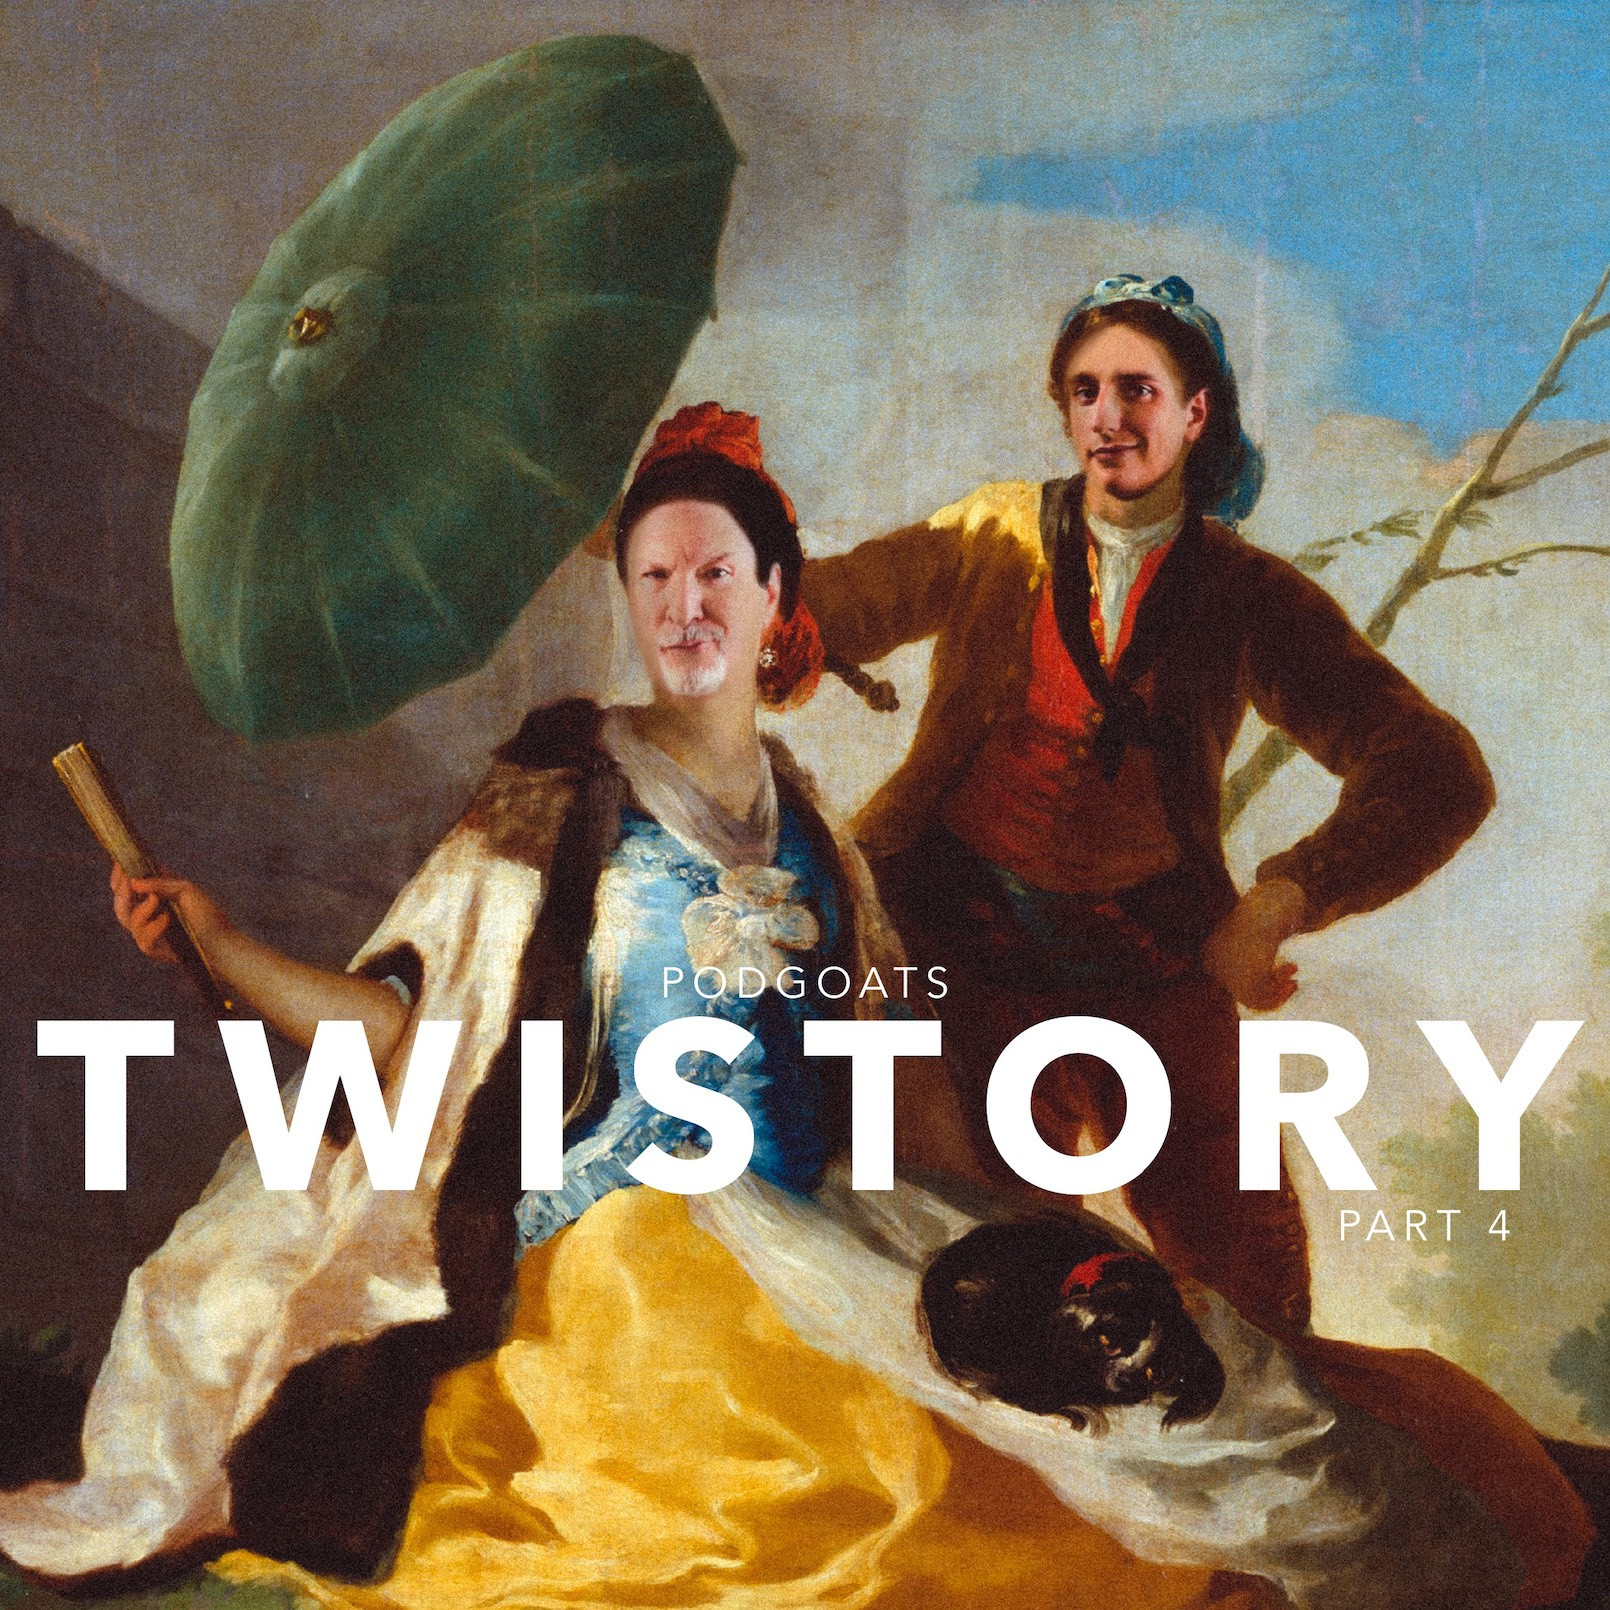 Twistory Part 04: From Prohibition to a Eugenics-loving Inventor